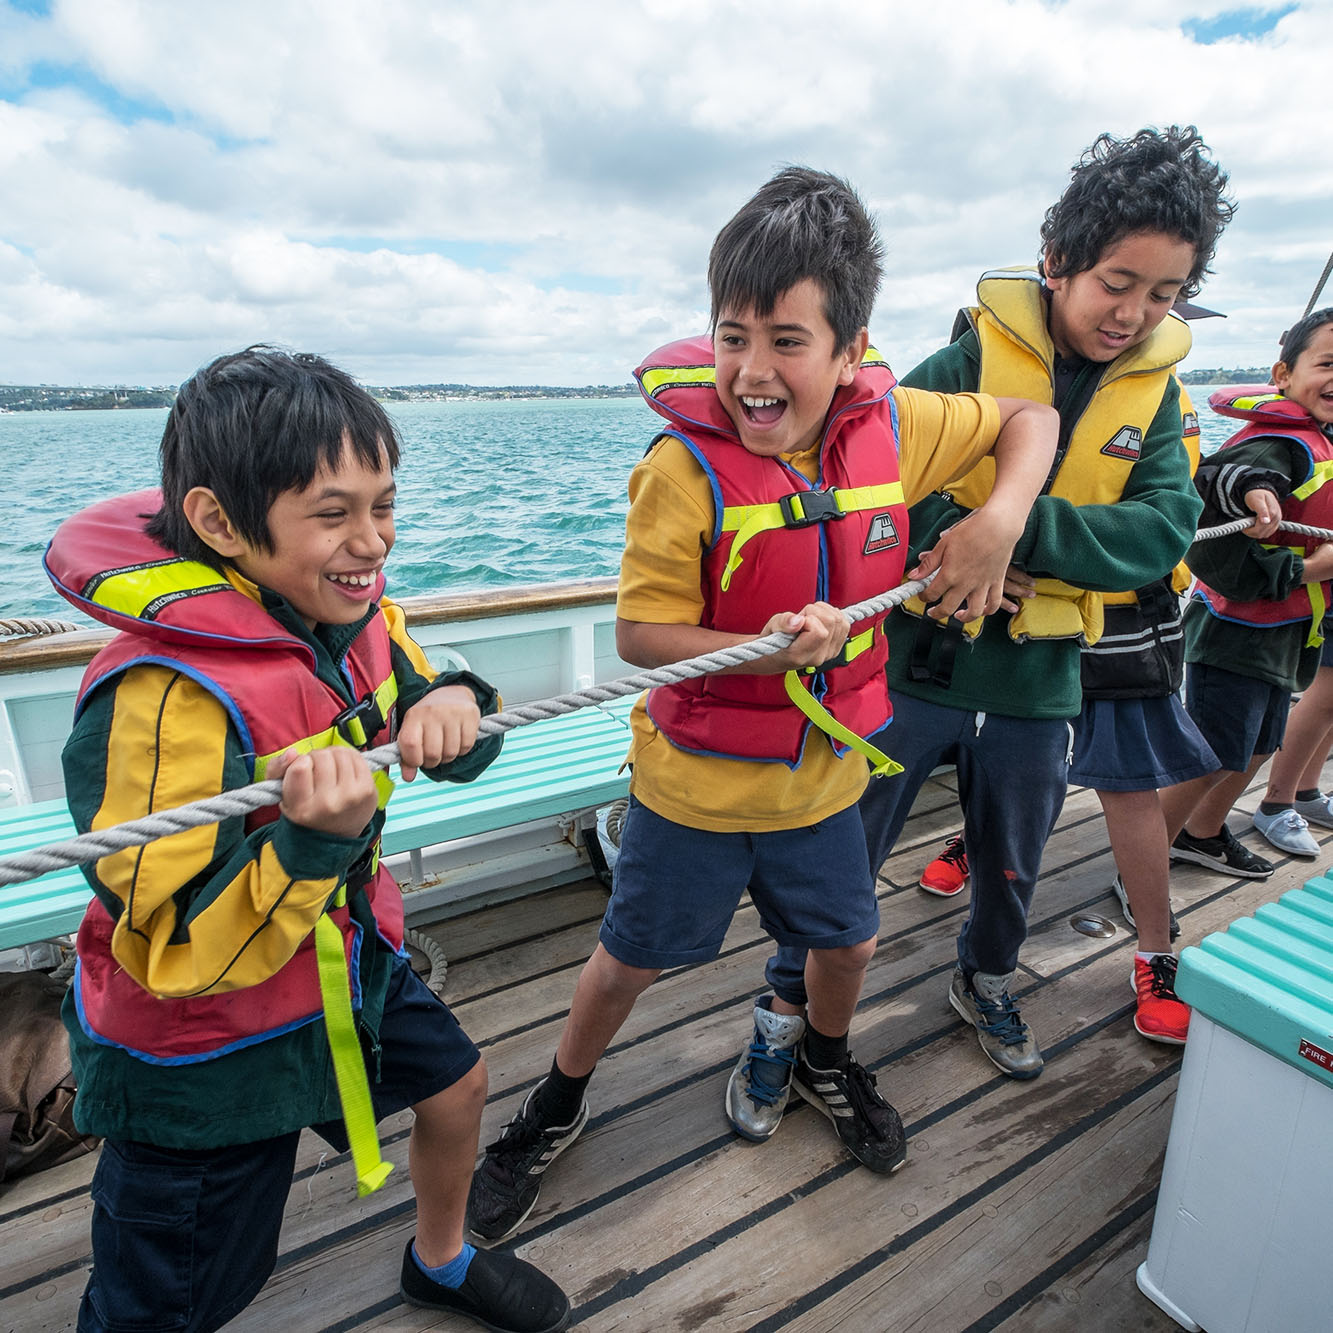 https://rfacdn.nz/maritime/assets/media/schools-education-sailing-ted-ashby-explorers-thumbnail.jpg